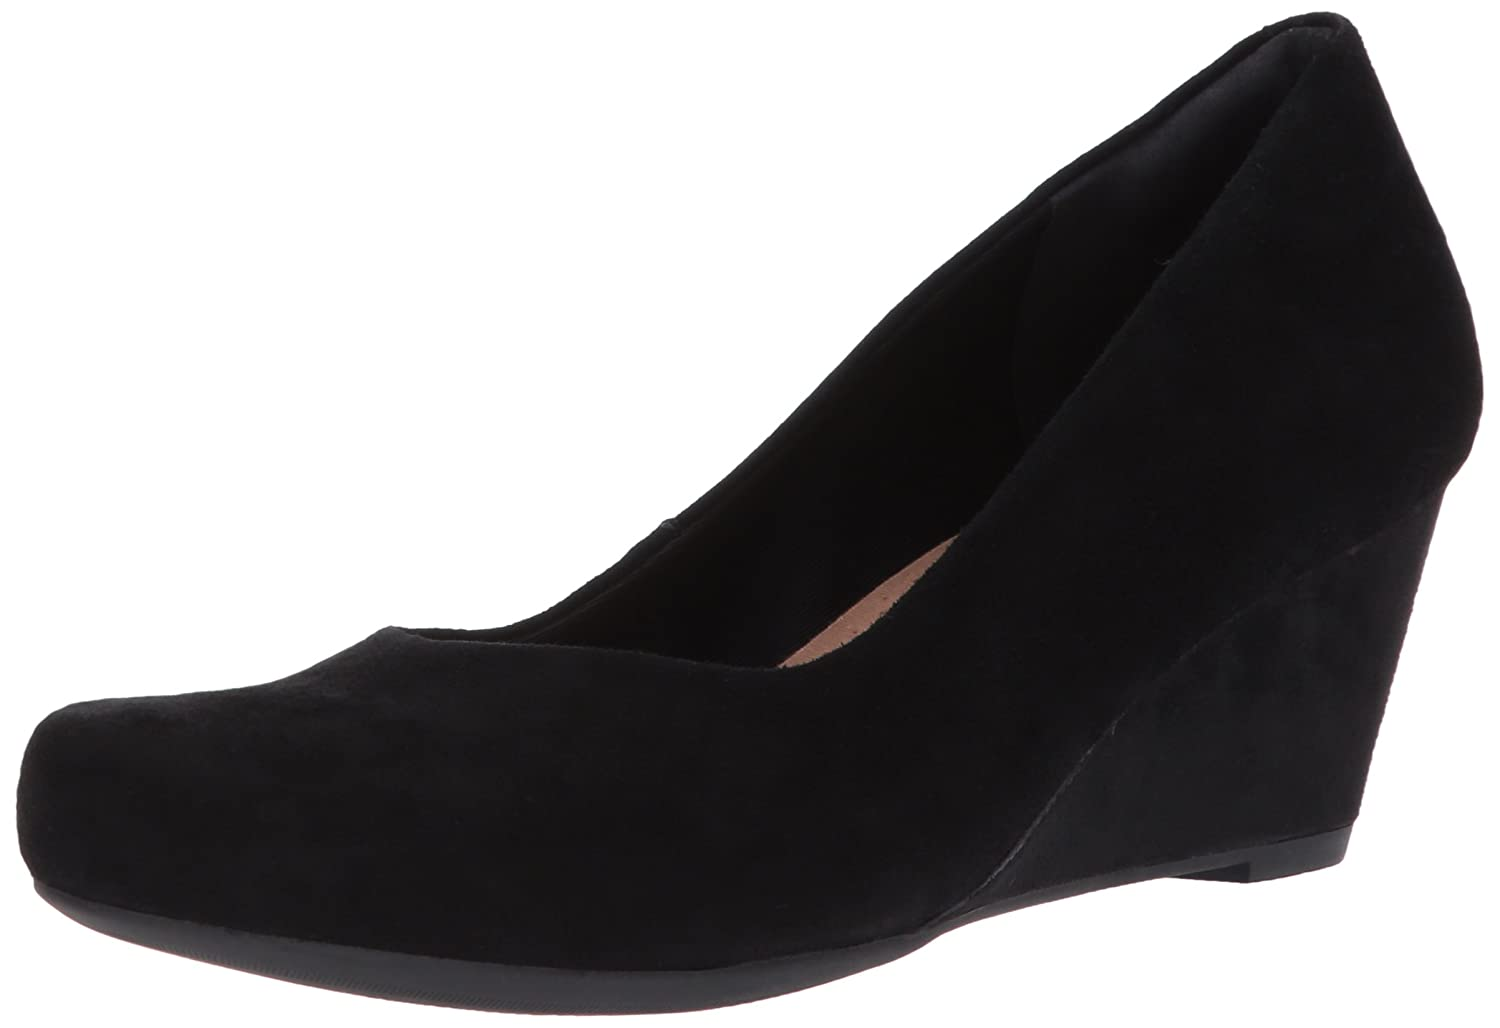 CLARKS Women's Flores Tulip Wedge Pump B01MT1E8K7 6.5 W US|Black Suede